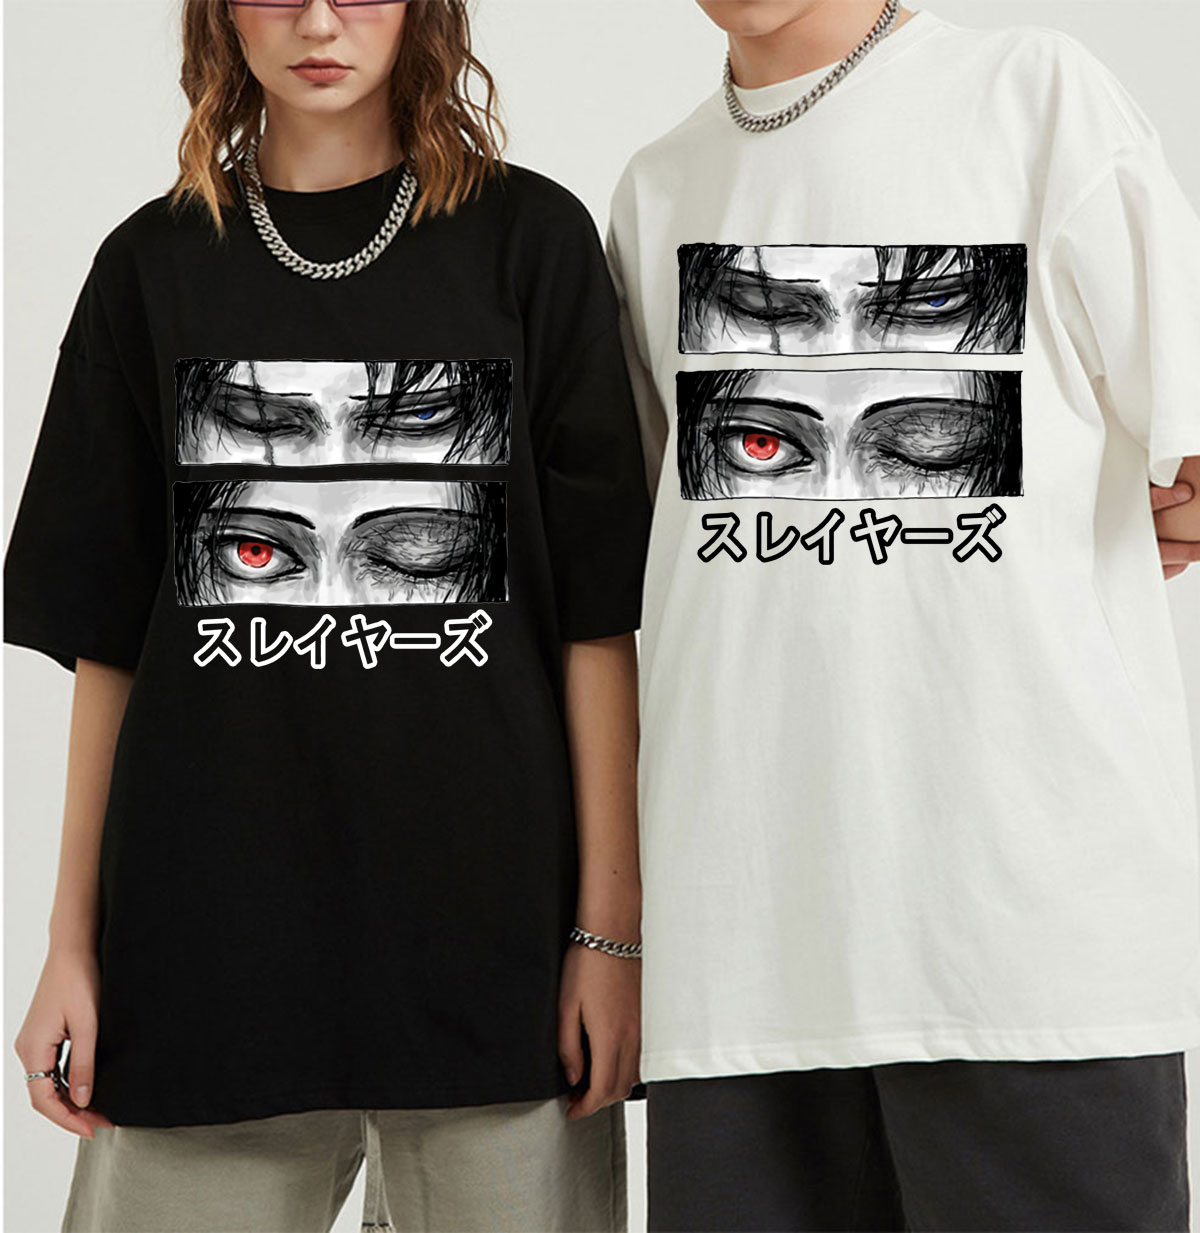 summer-new-japanese-anime-attack-on-titan-levi-eyes-print-men-oversized-t-shirt-short-sleeve-loose-streetwear-casual-tees-tops